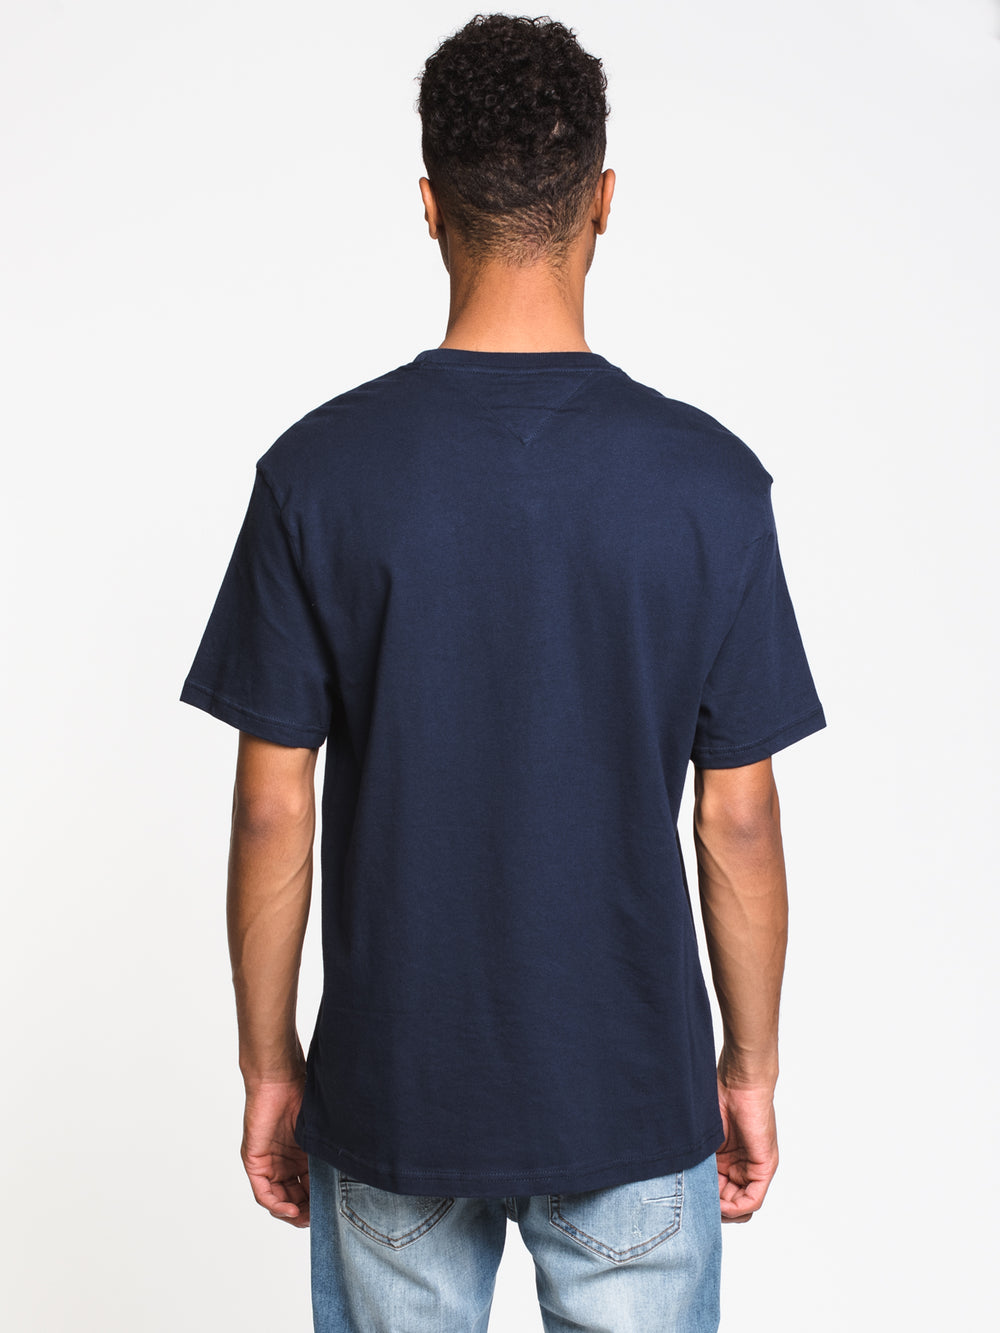 MENS BOLD TOMMY LOGO SHORT SLEEVE T-SHIRT- NAVY